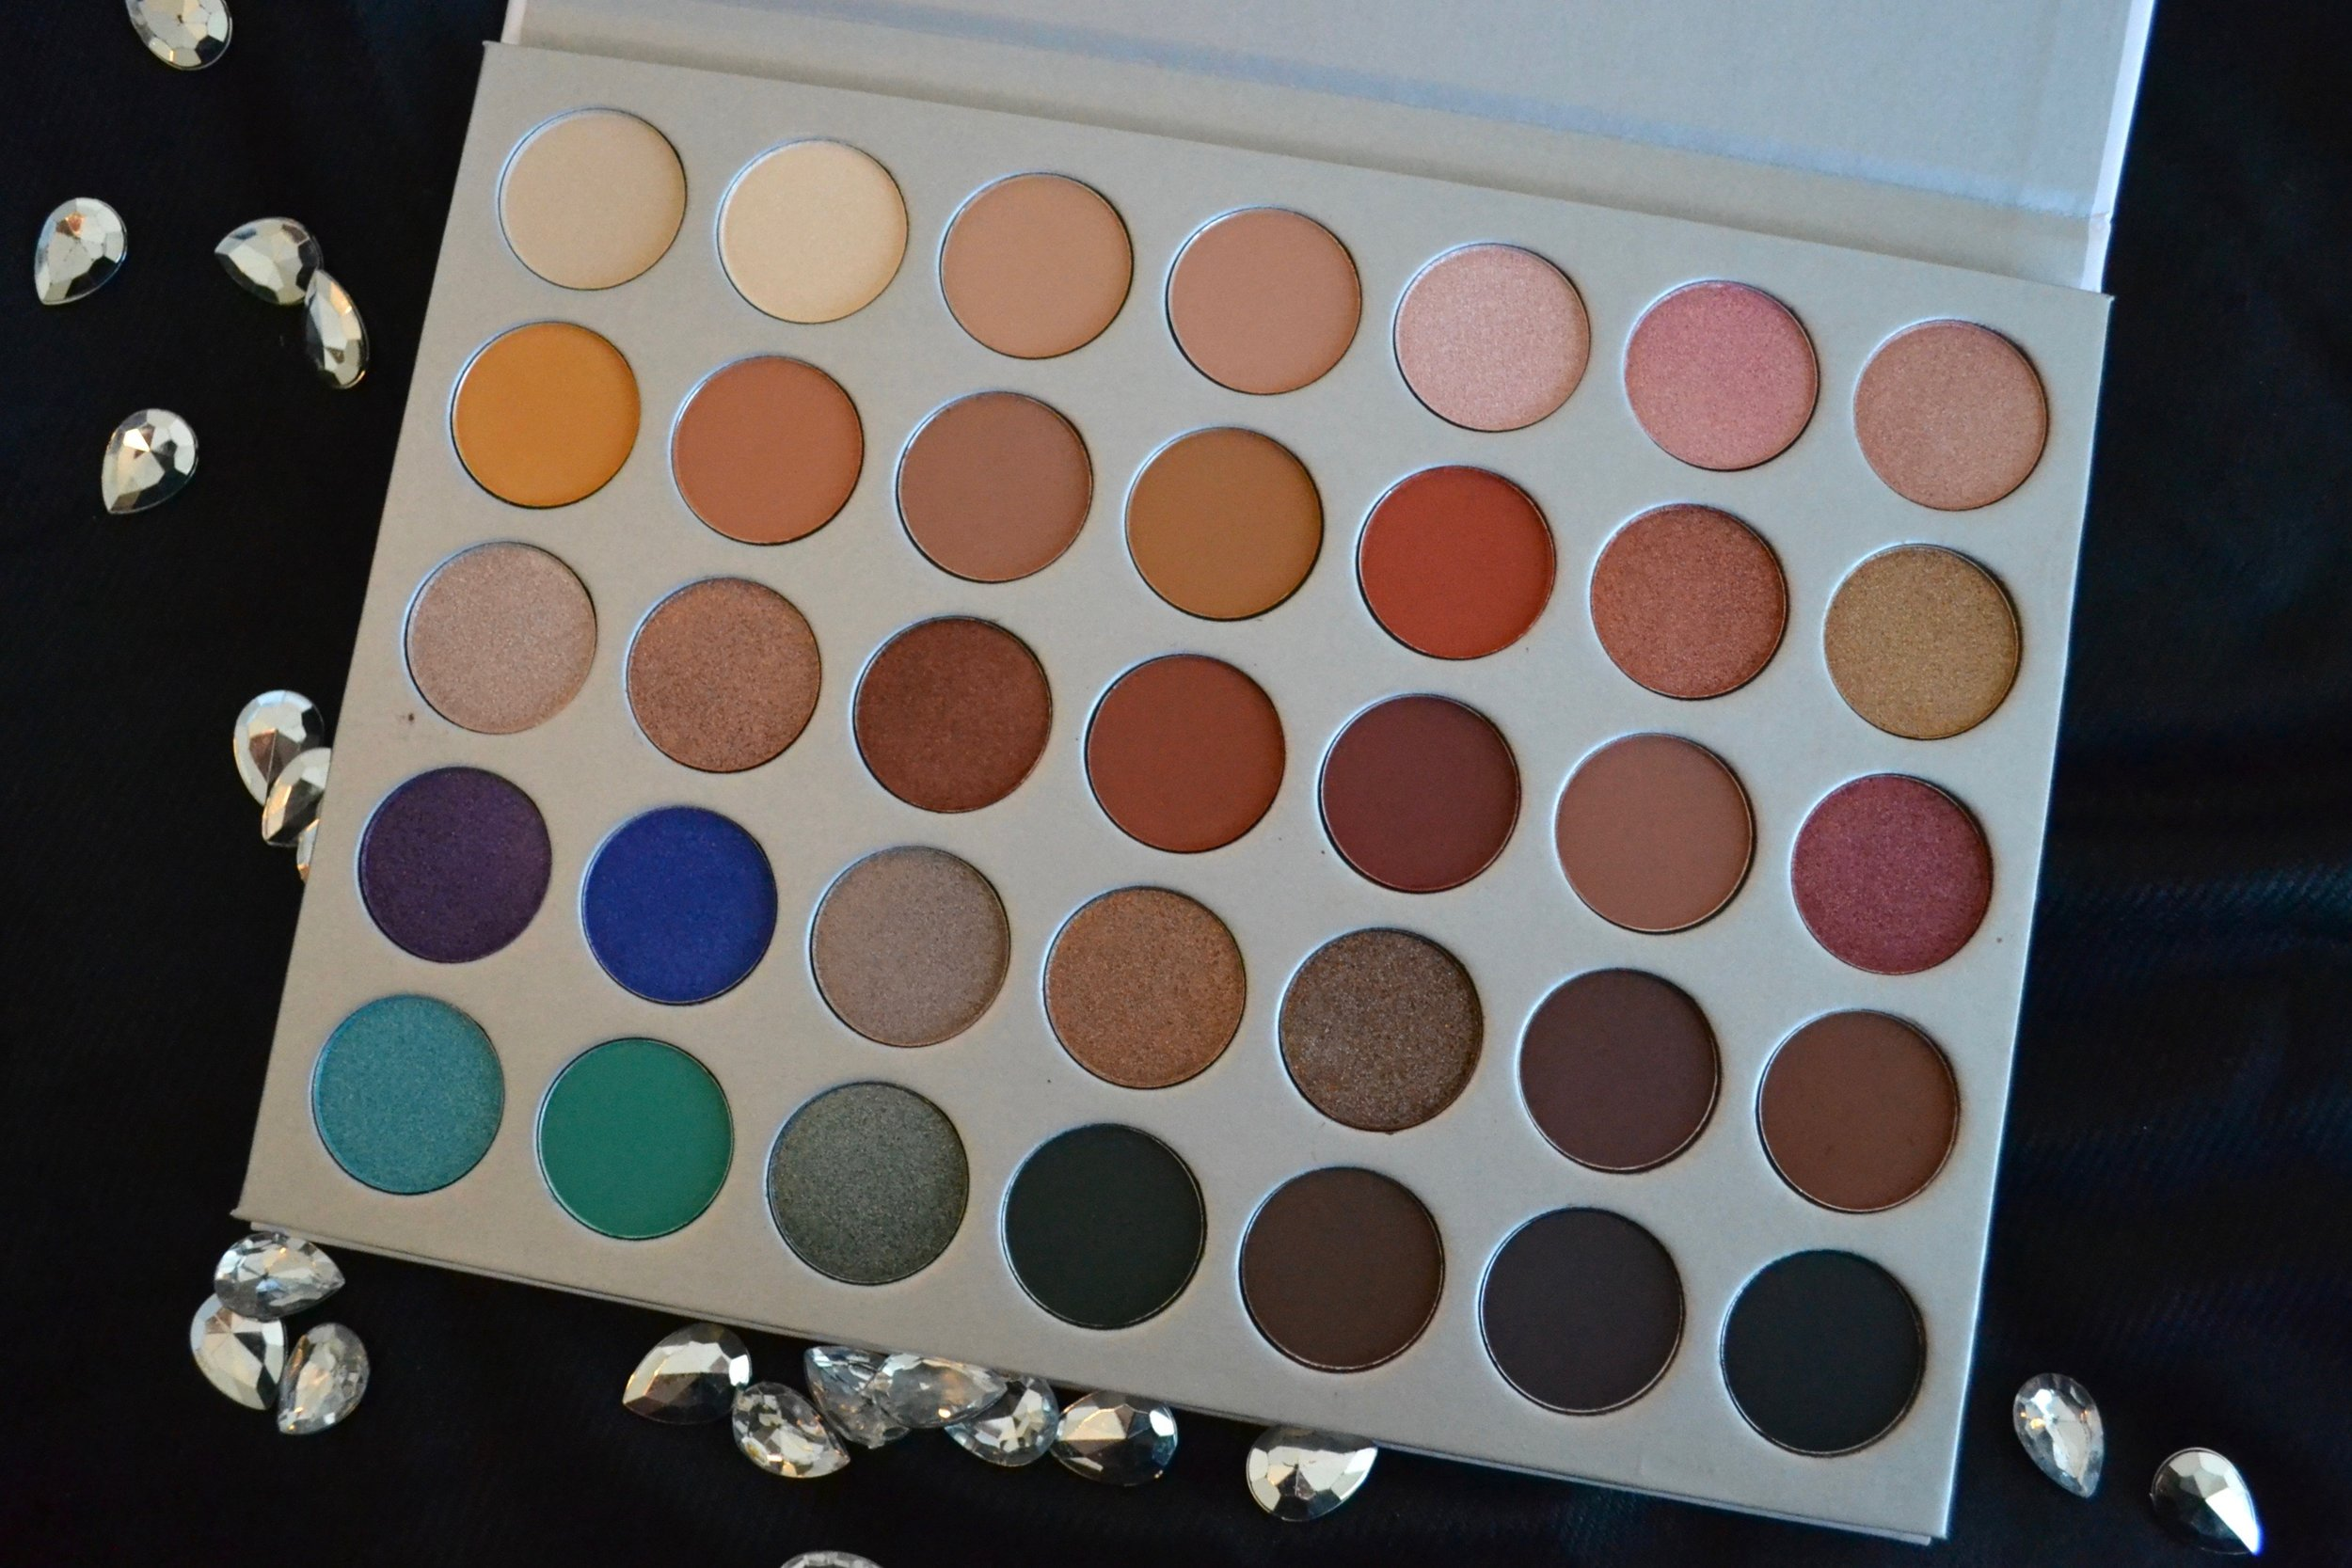 Morphe Brushes Jaclyn Hill Palette - Review and Swatches